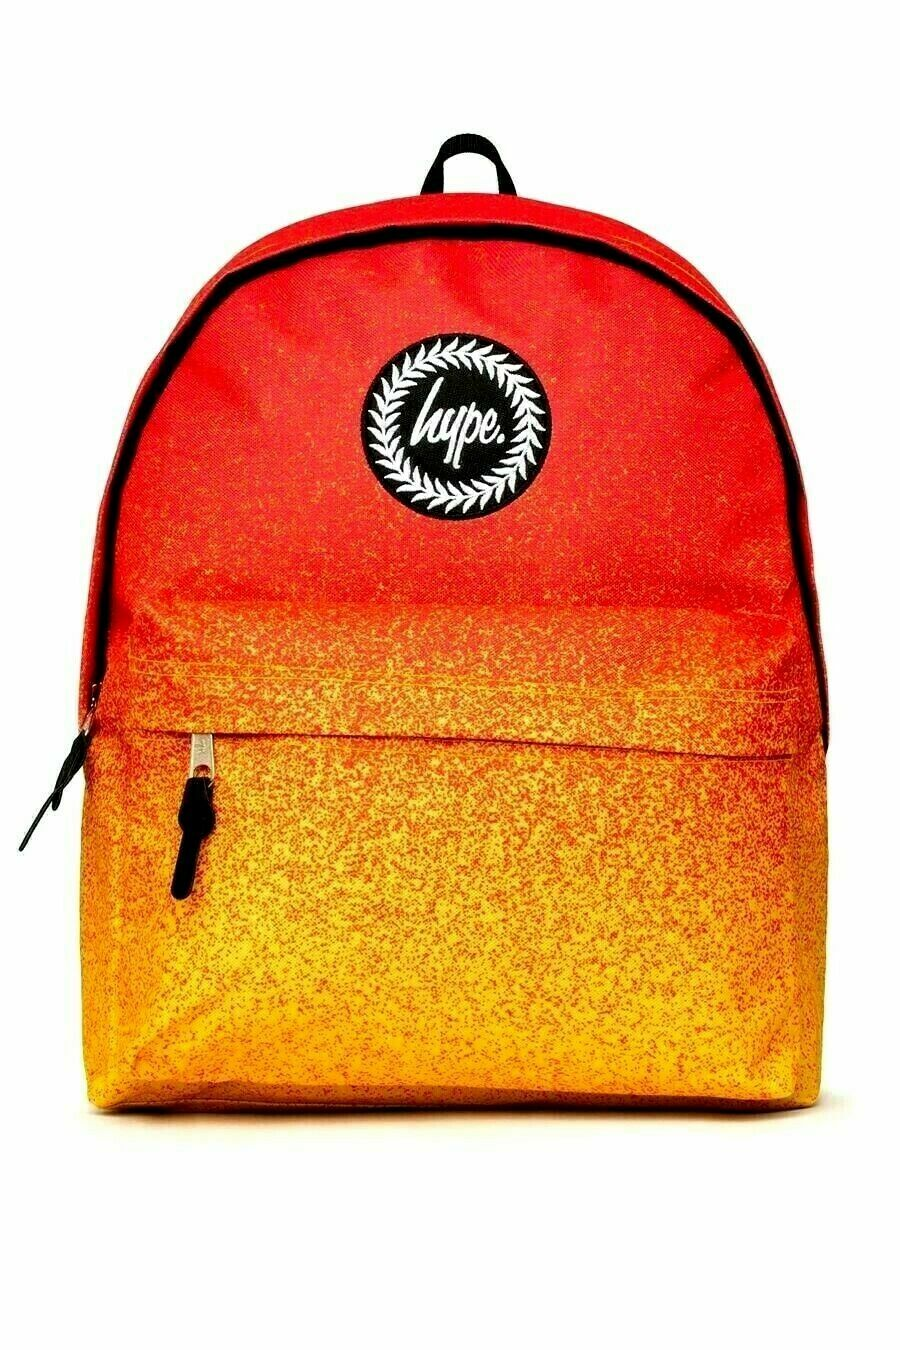 HYPE SPECKLE FADE BACKPACK RUCKSACK BAG - MULTI